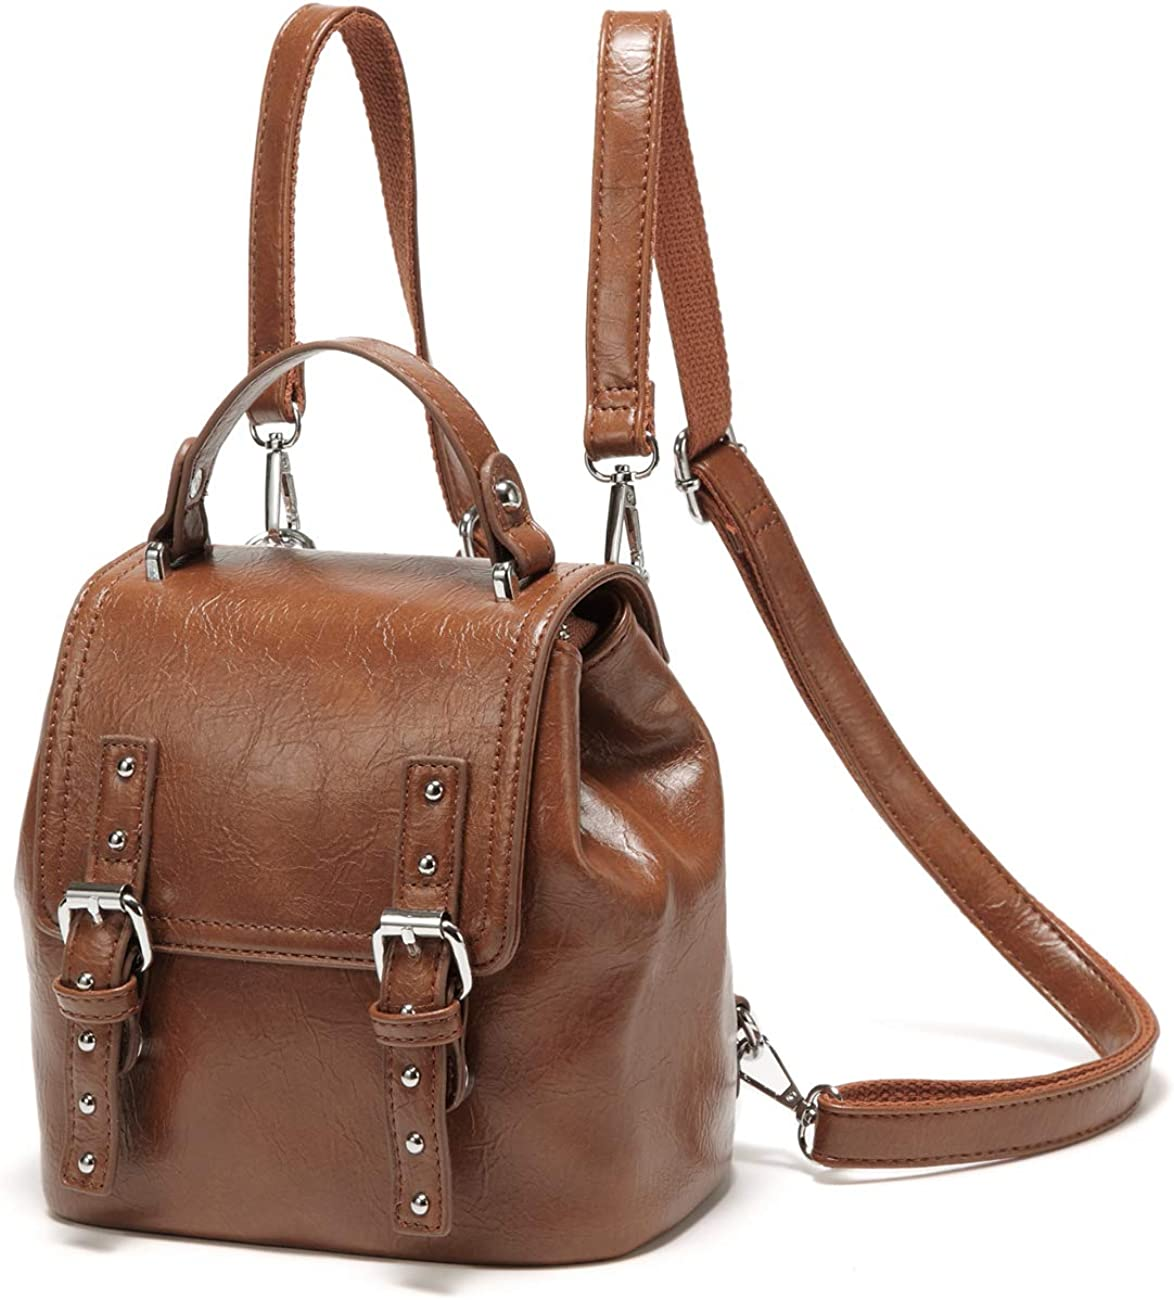 Seattle Mall MiniBackpack Purse VASCHY 3 Limited time sale Ways Backpac to Small Carry Cute